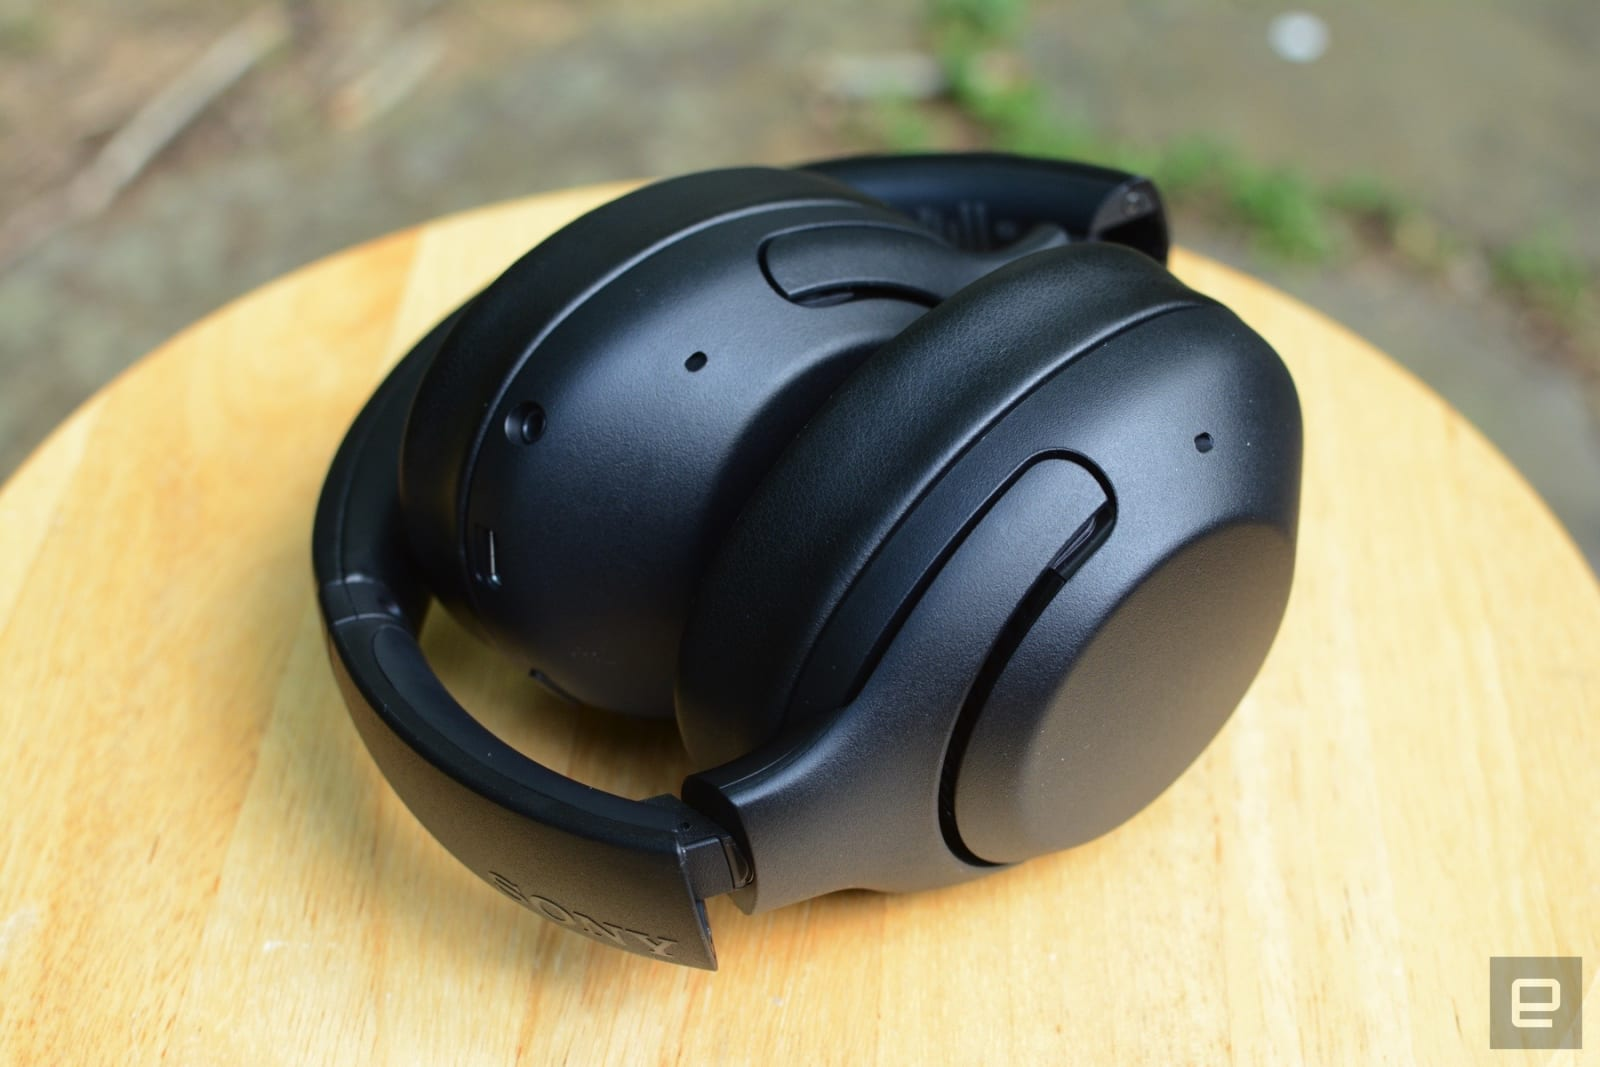 Sony WH-XB900N review